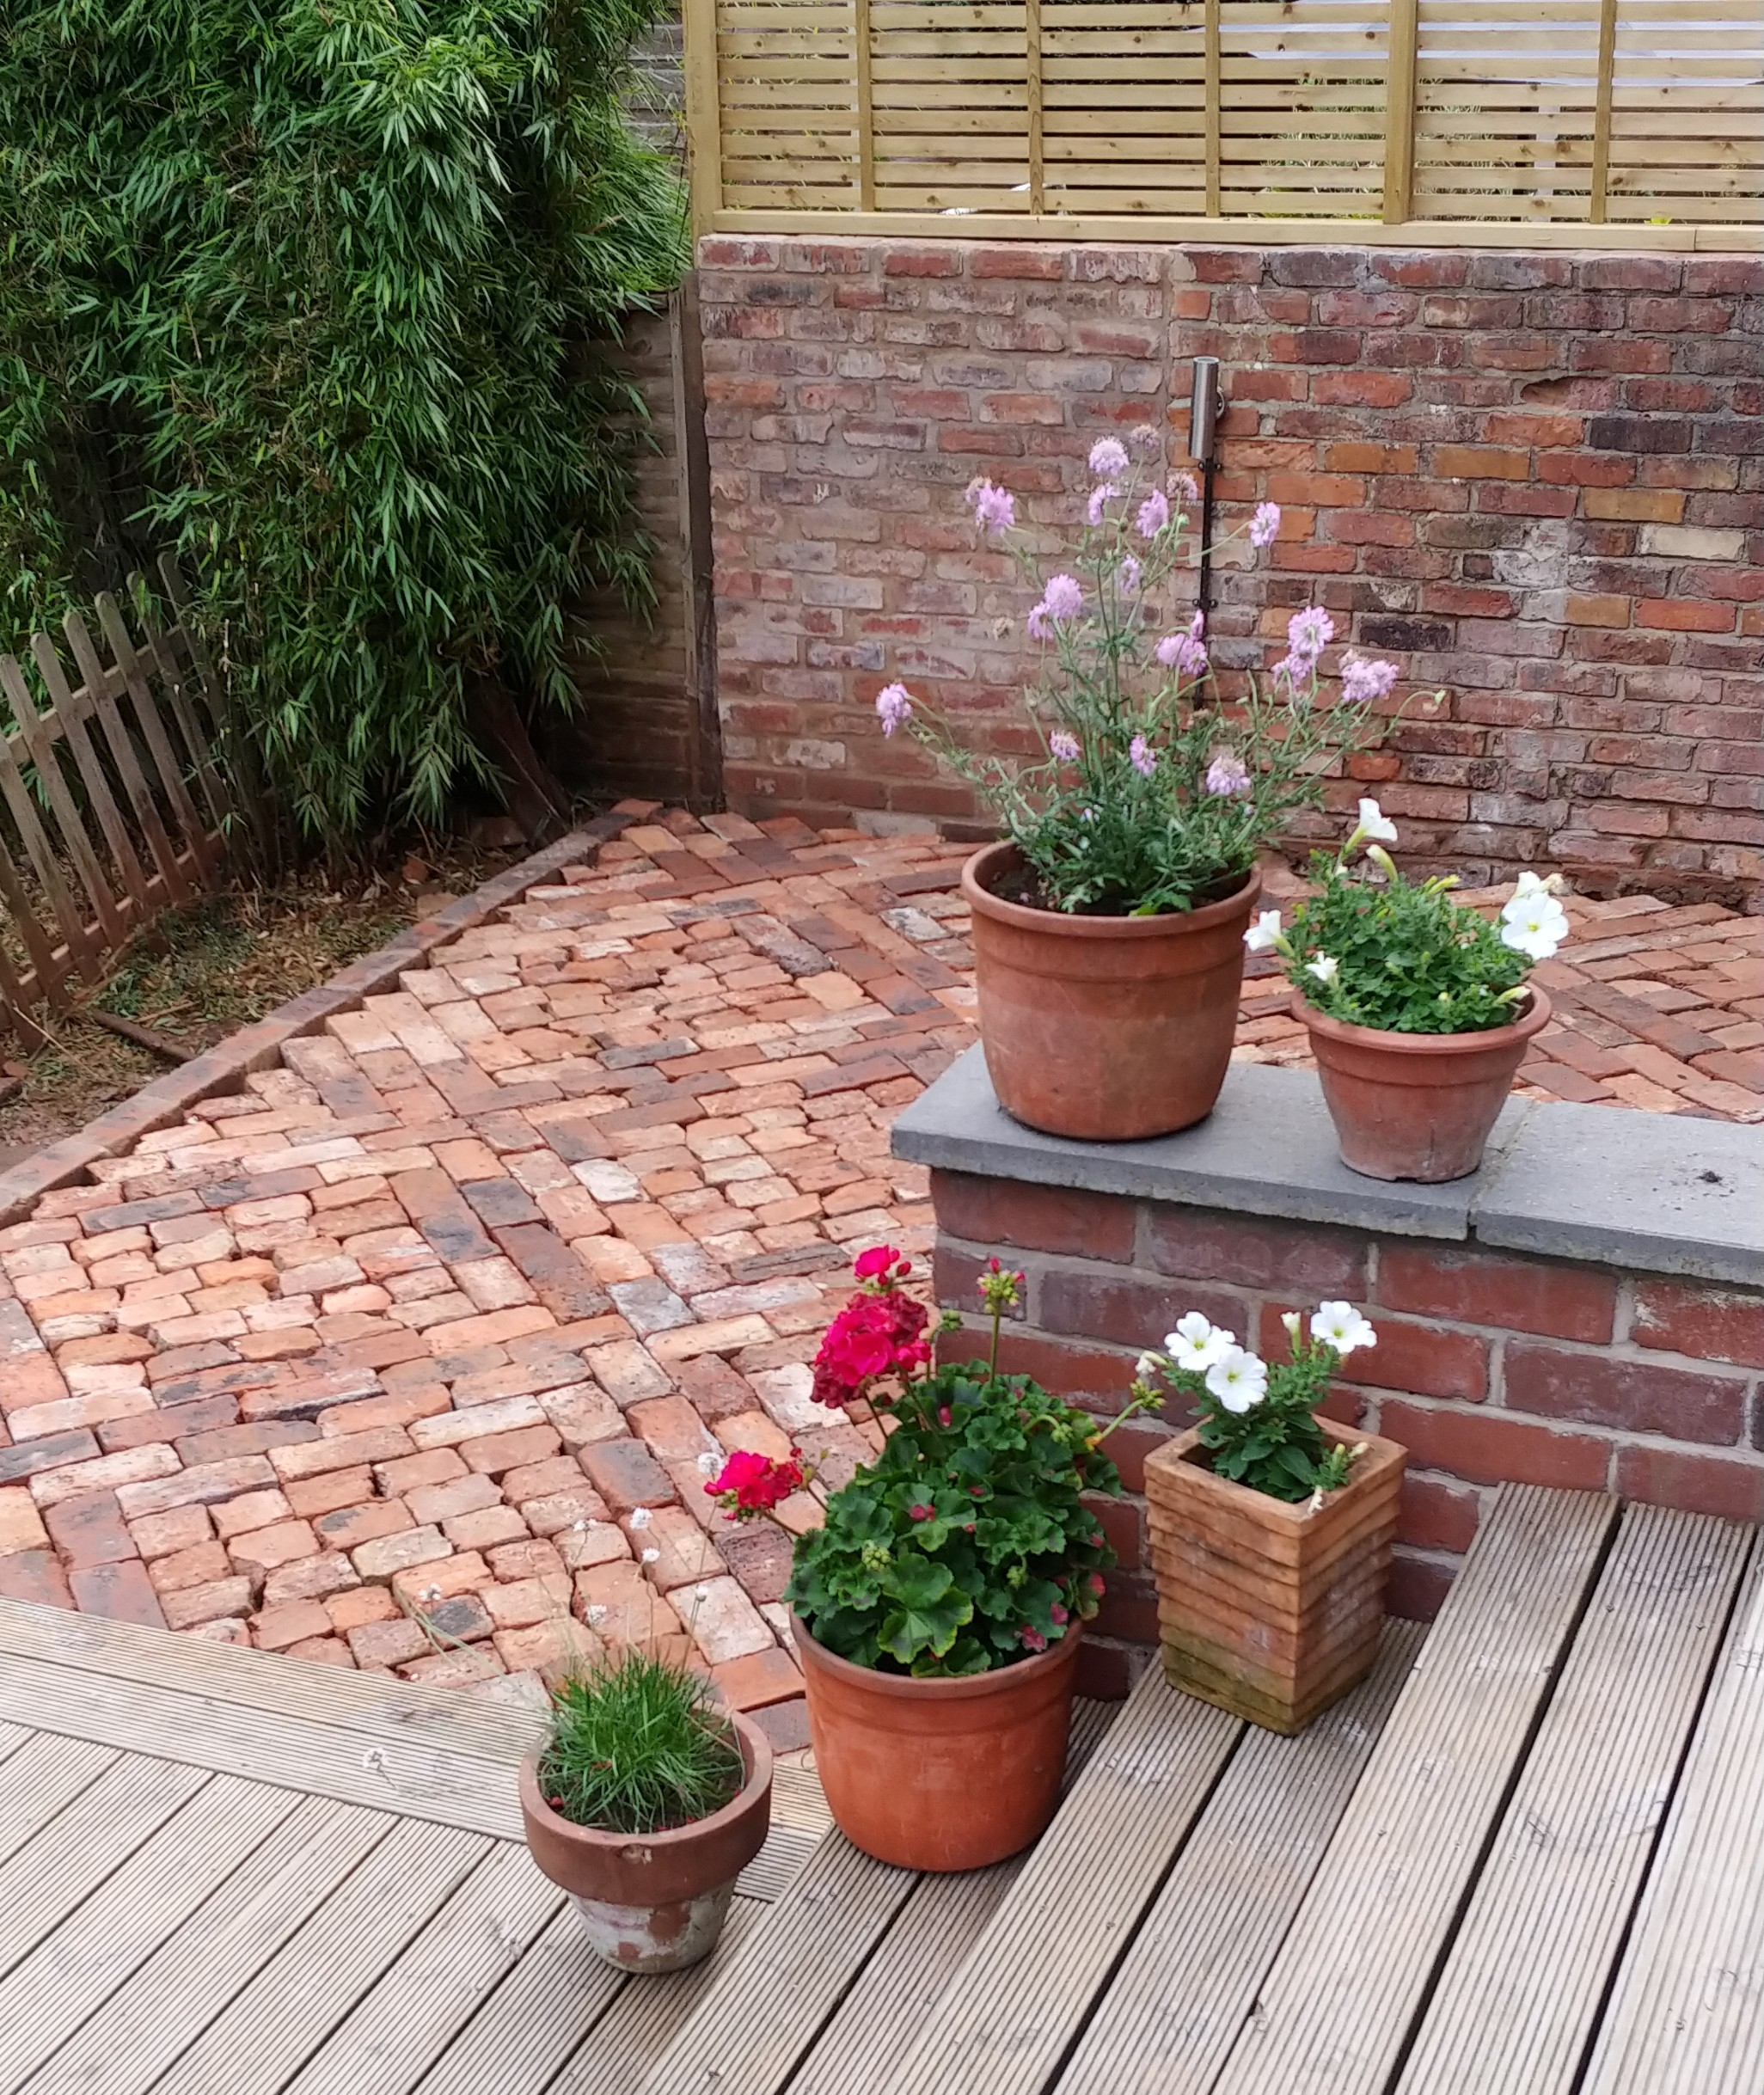 to lay a patio from reclaimed bricks